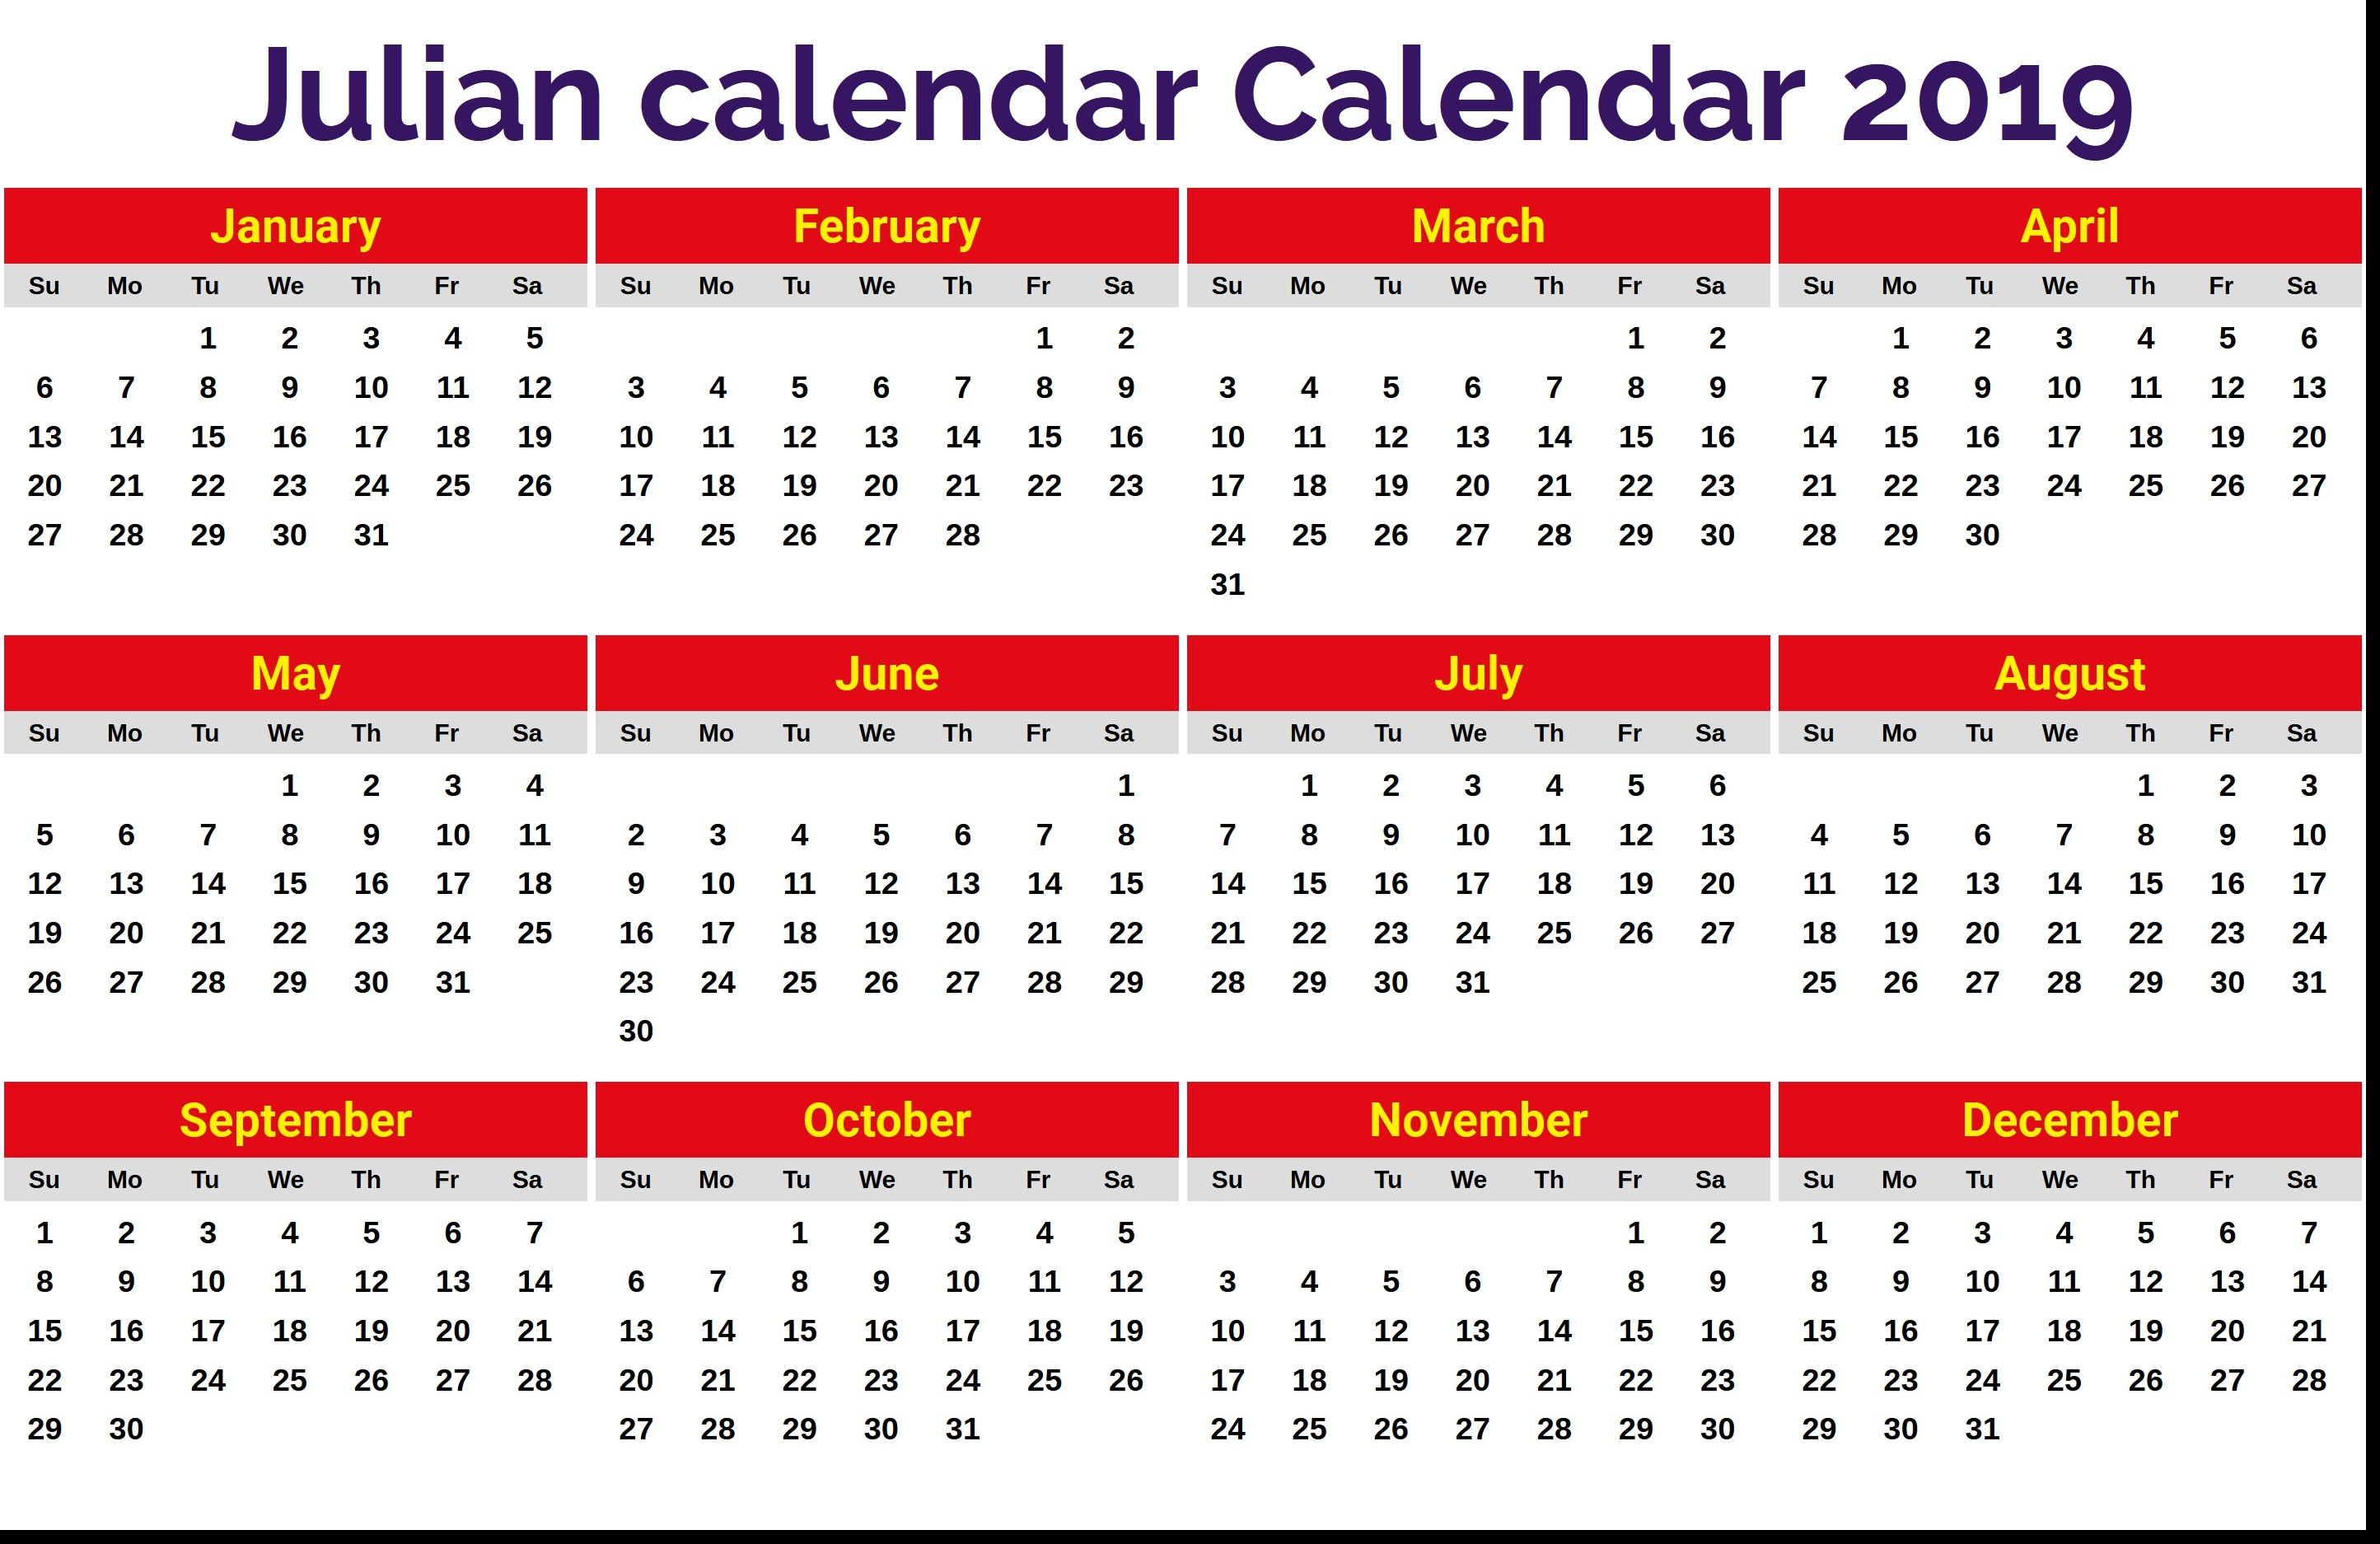 2019 Julian Date Calendar Printable Julian Calendar 2019 Calendar within Monthly Calendar With Julian Dates